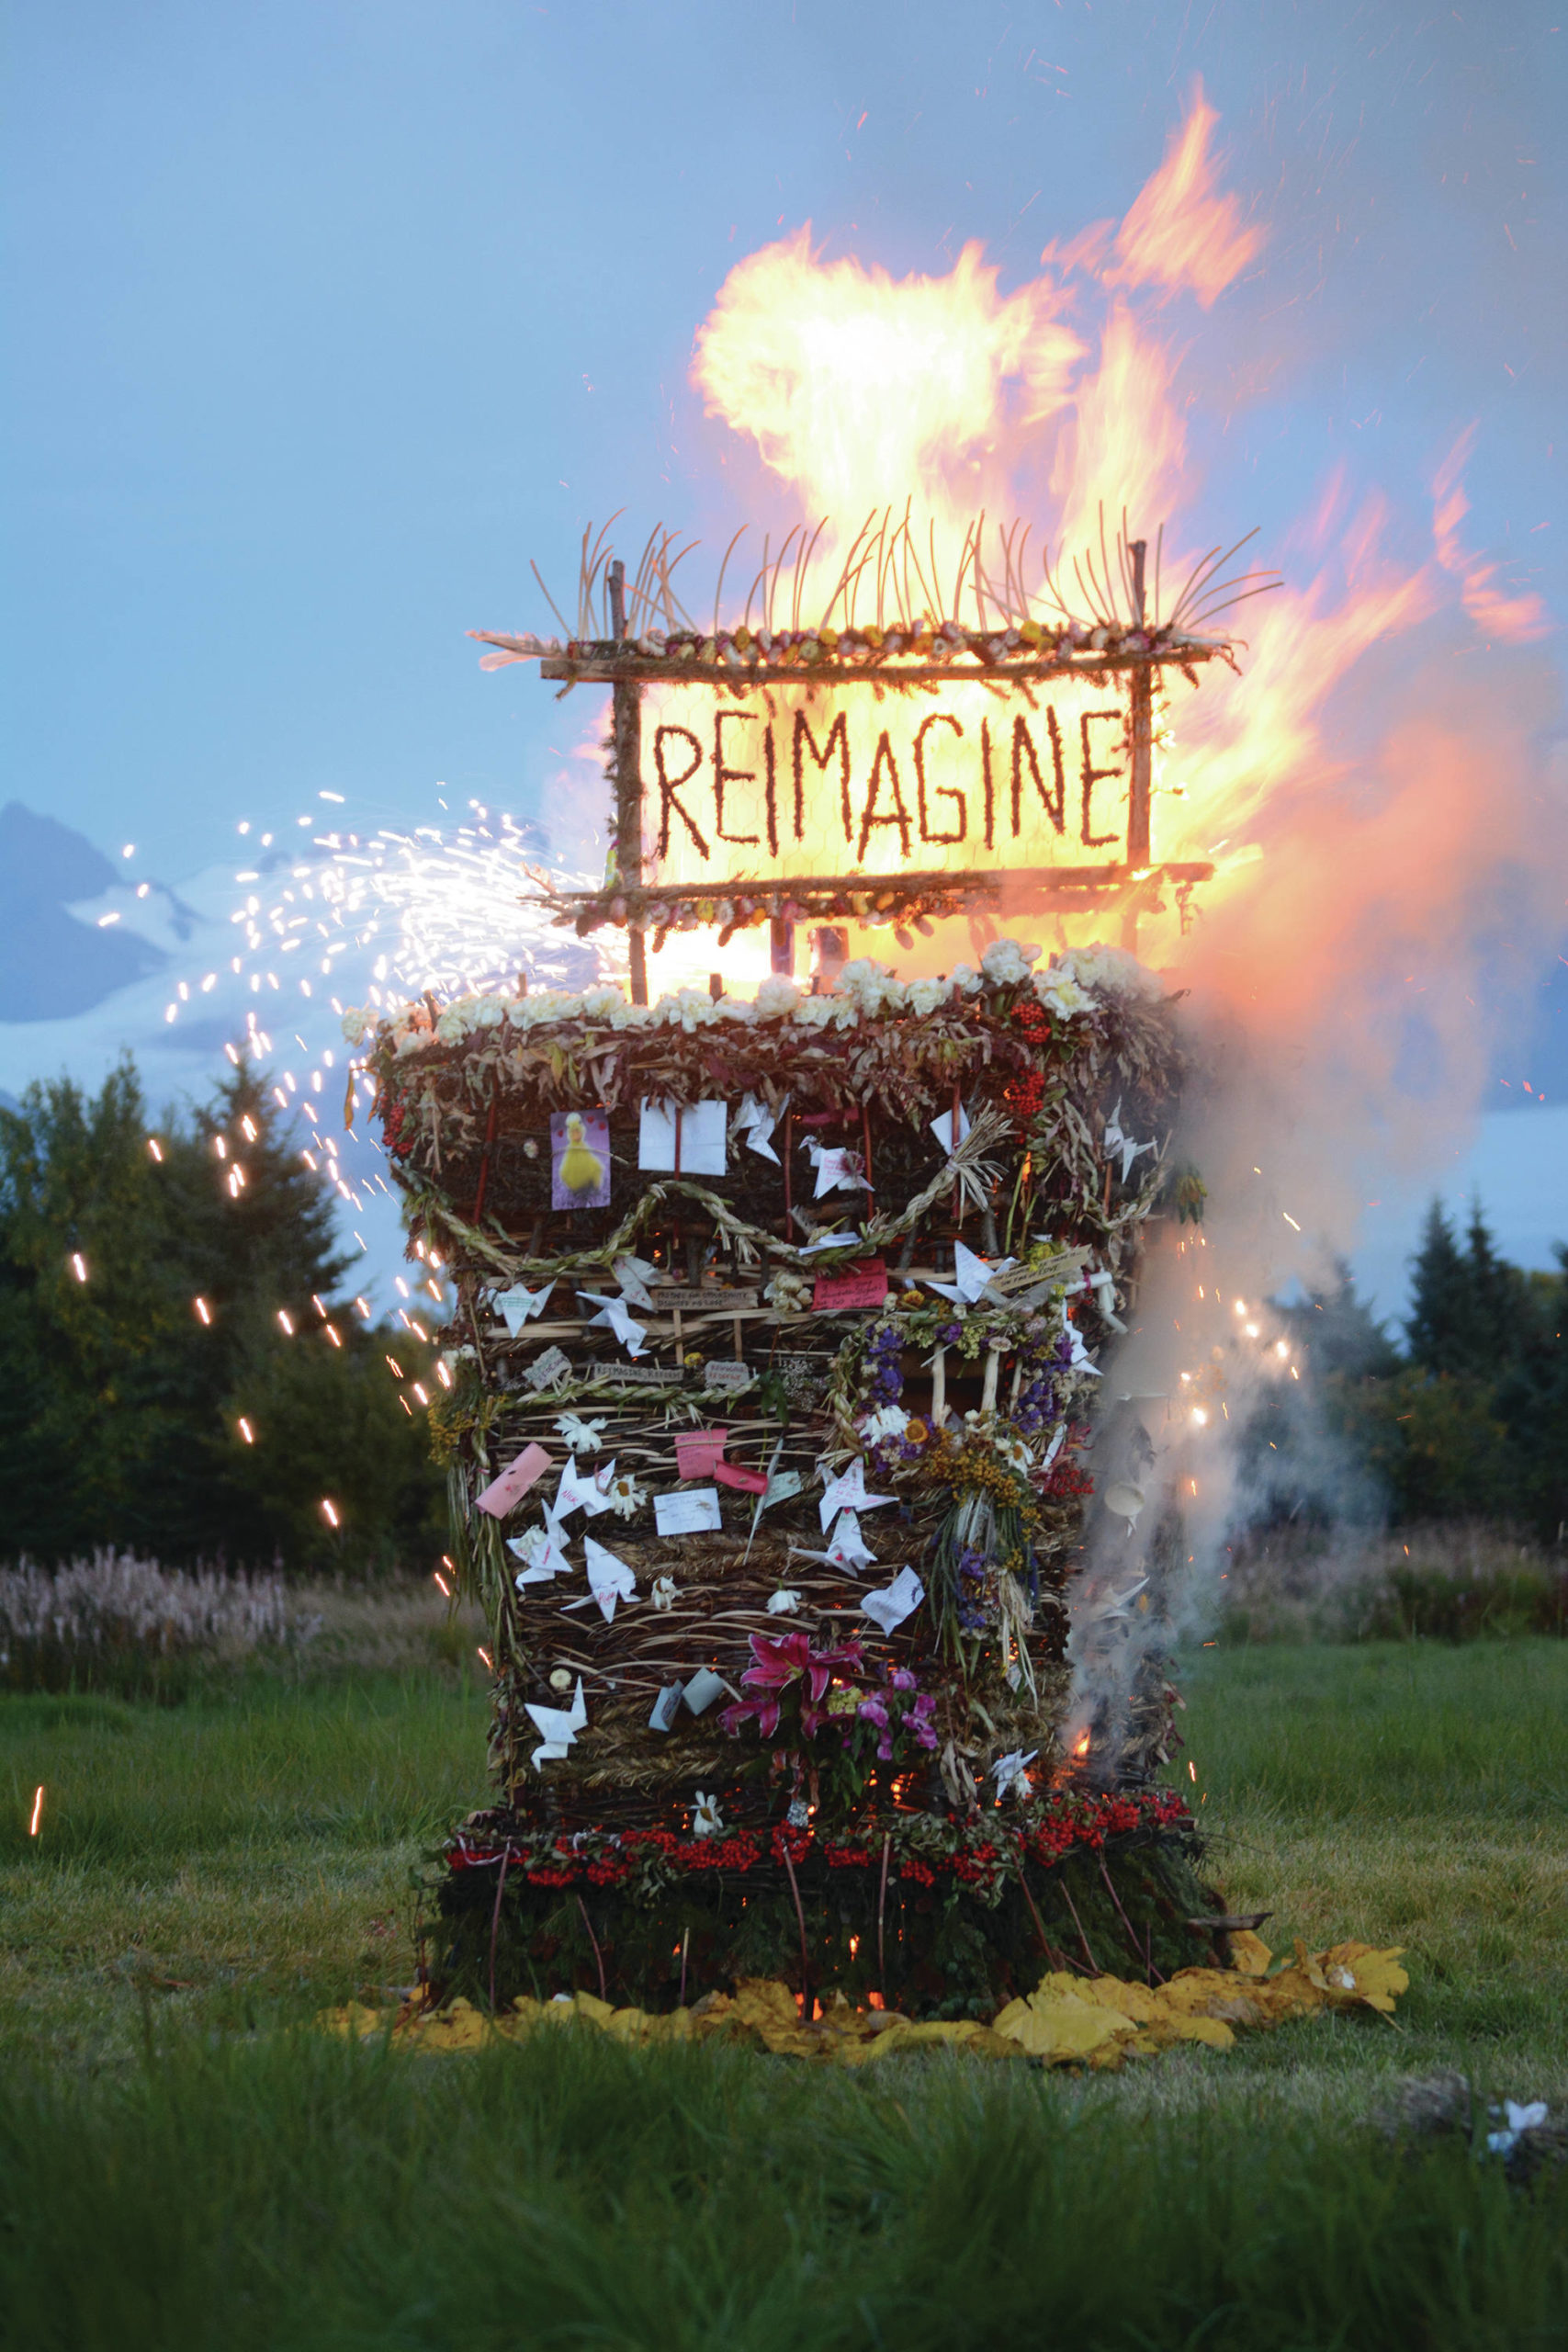 """Reimagine,"" the 17th annual Burning Basket, catches fire in a field on Sunday, Sept. 13, 2020, near Homer, Alaska. Artist Mavis Muller intended to broadcast live on Facebook and YouTube the burning of the basket, but because of technical difficulties that didn't happen. ""Burning Basket teaches how to let go of expectations and accept the present moment,"" Muller wrote in a text message. ""Technology is fickle. The basket, however, did exactly what it promised to do. It helod our collective burderns, our memorials, our joys, sadness, fear, and dispersed all of our good intentions in a plume of smoke, sparks and flames."" (Photo by Michael Armstrong/Homer News)"